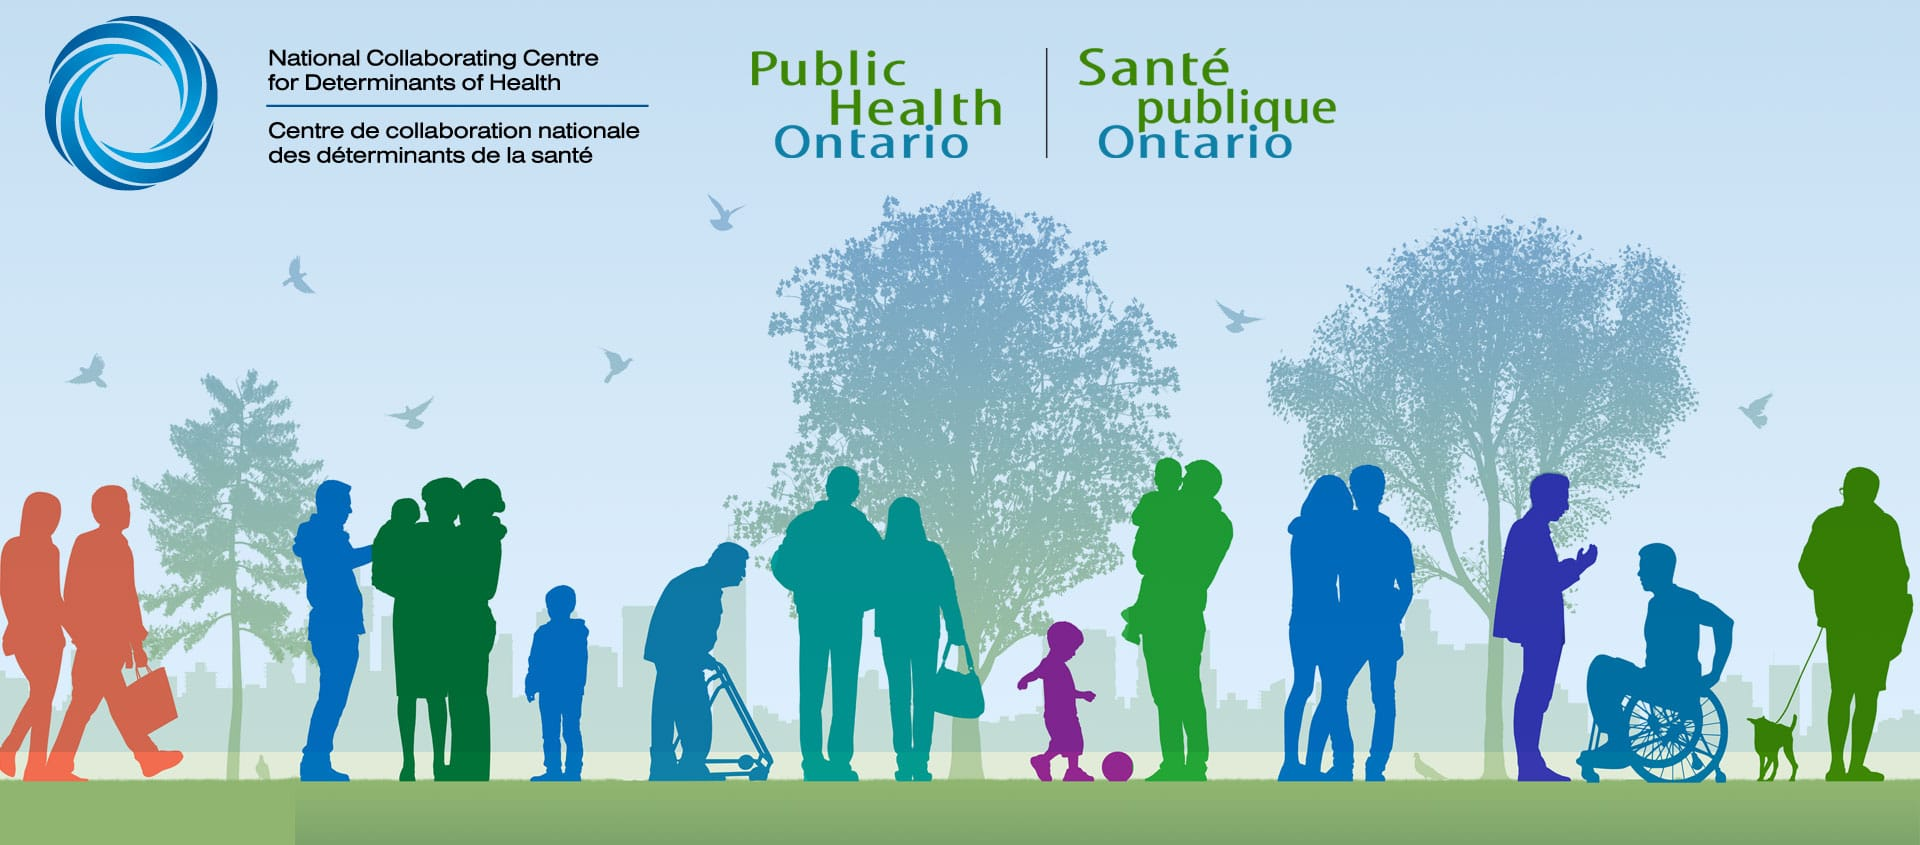 National Collaborating Centre for Determinants of Health and Publich Health Ontario Logo on animated background